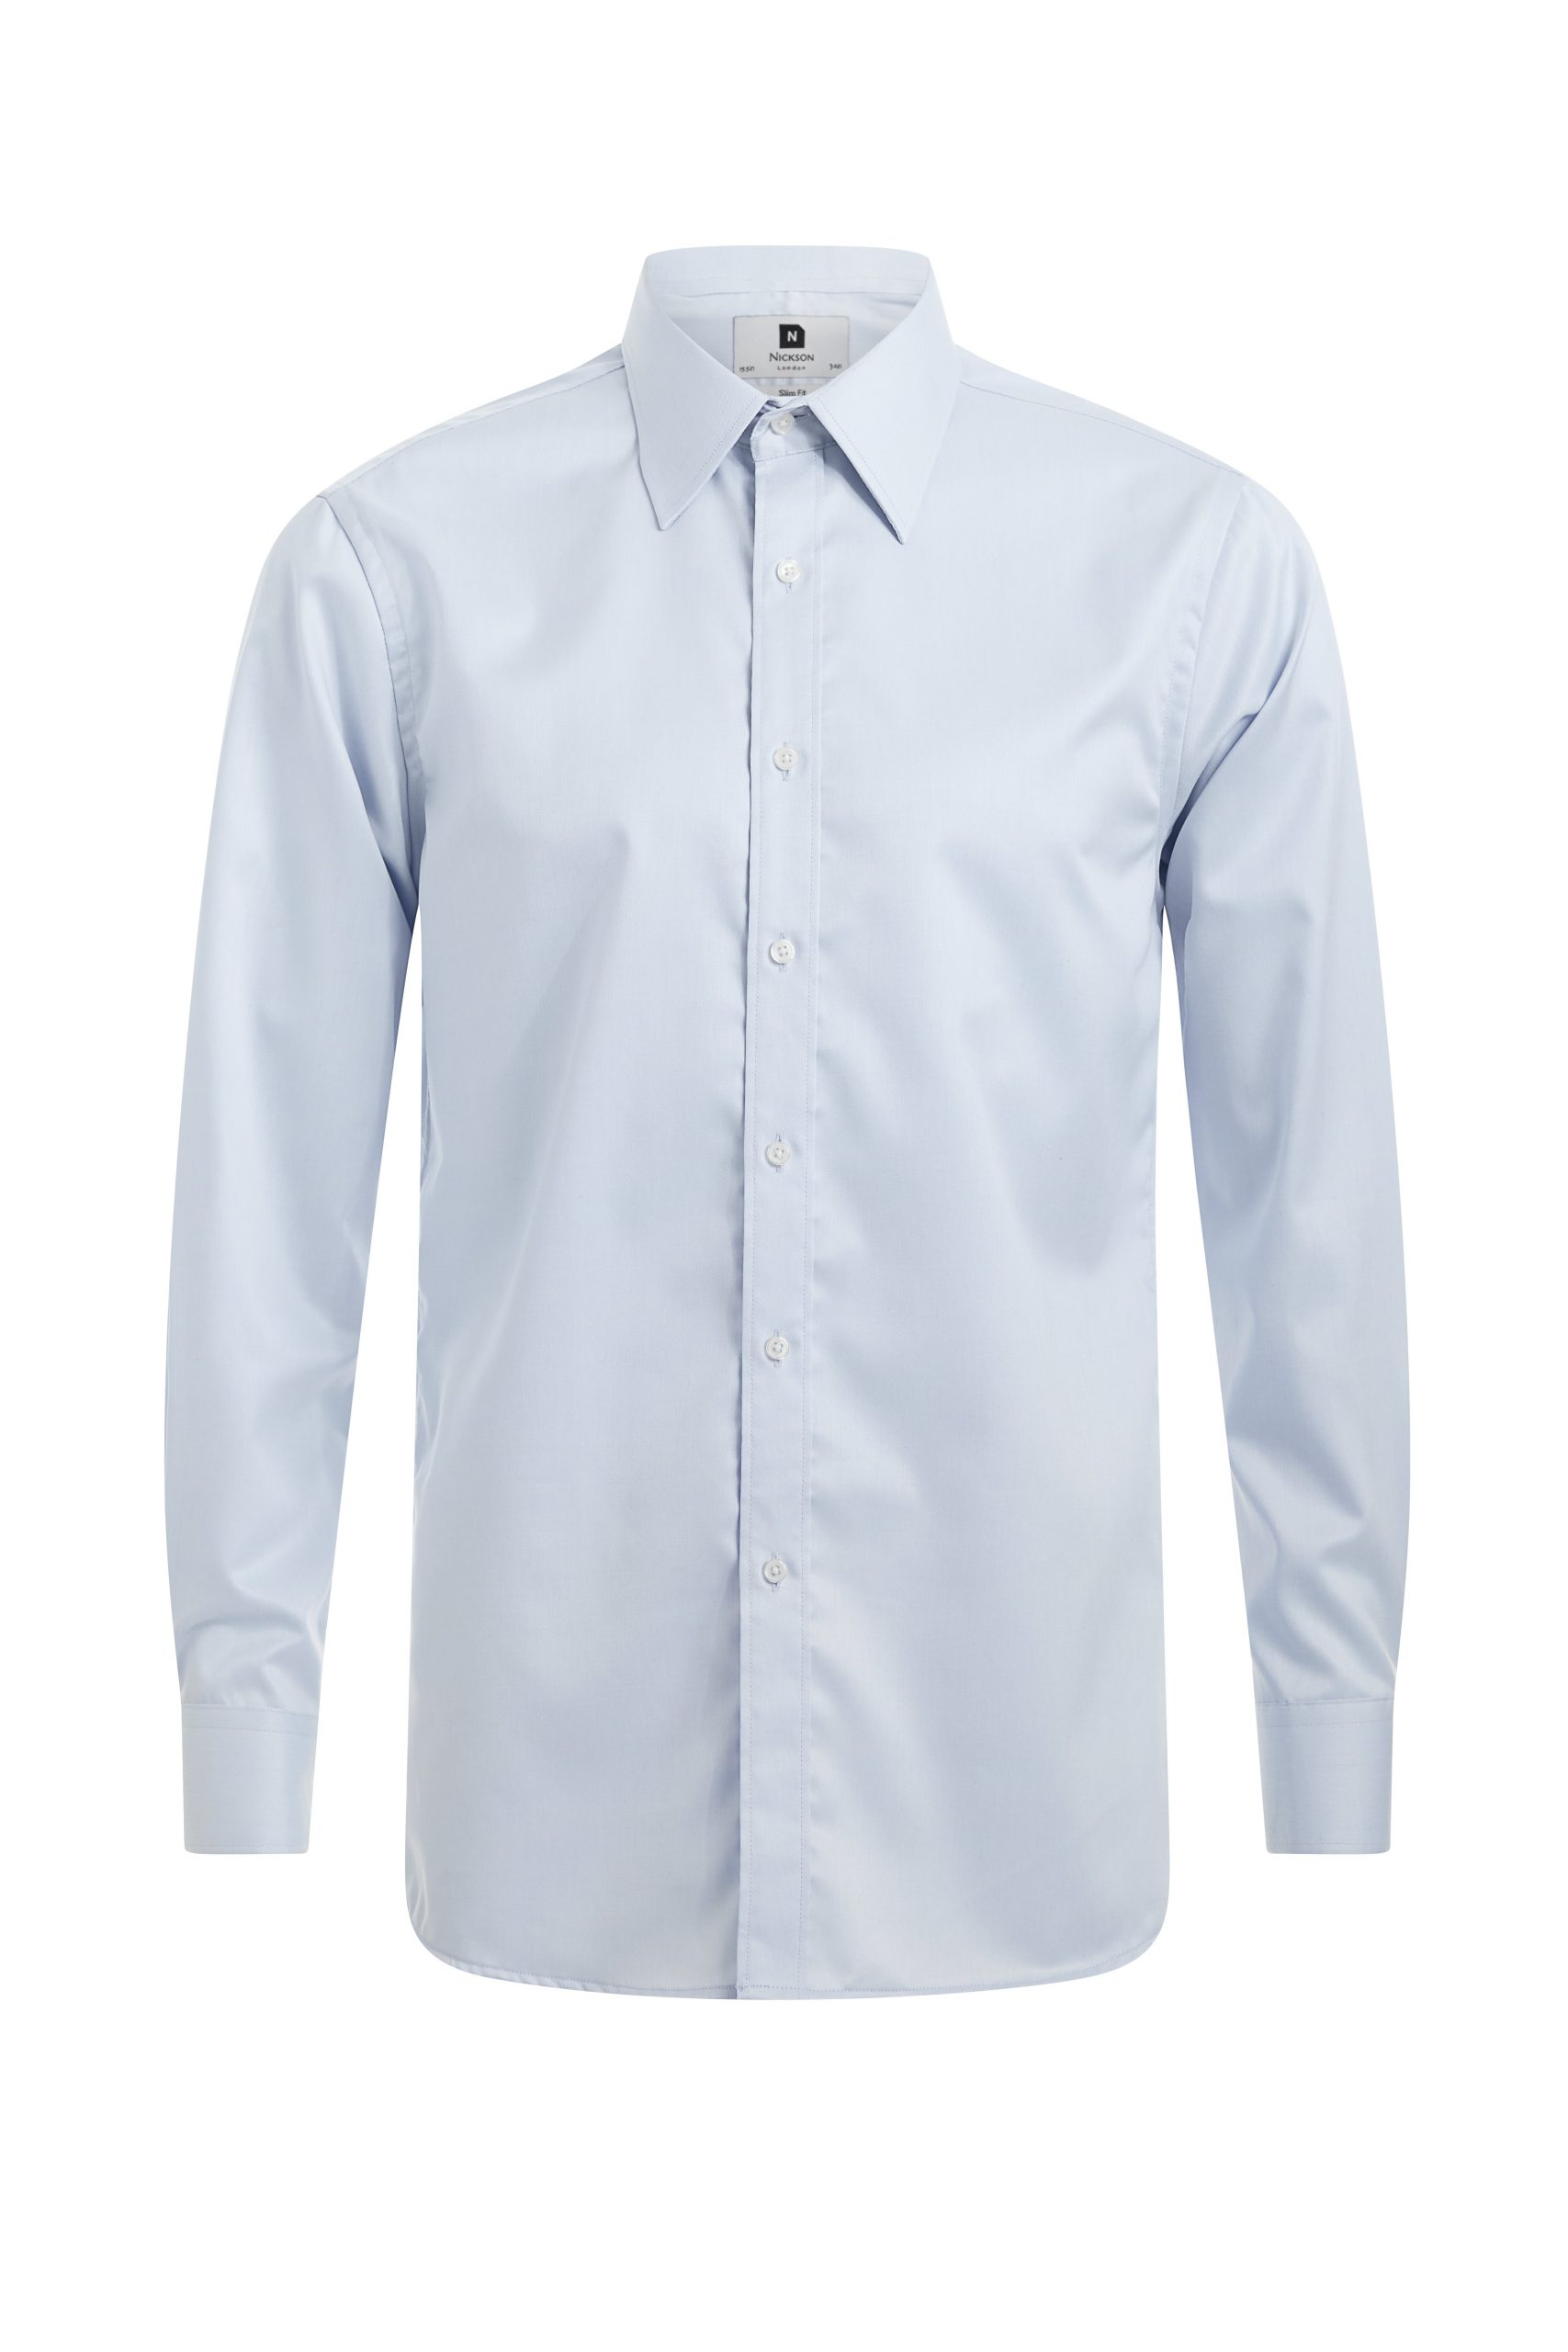 Straight Point - Quick Iron - Light Blue - Front